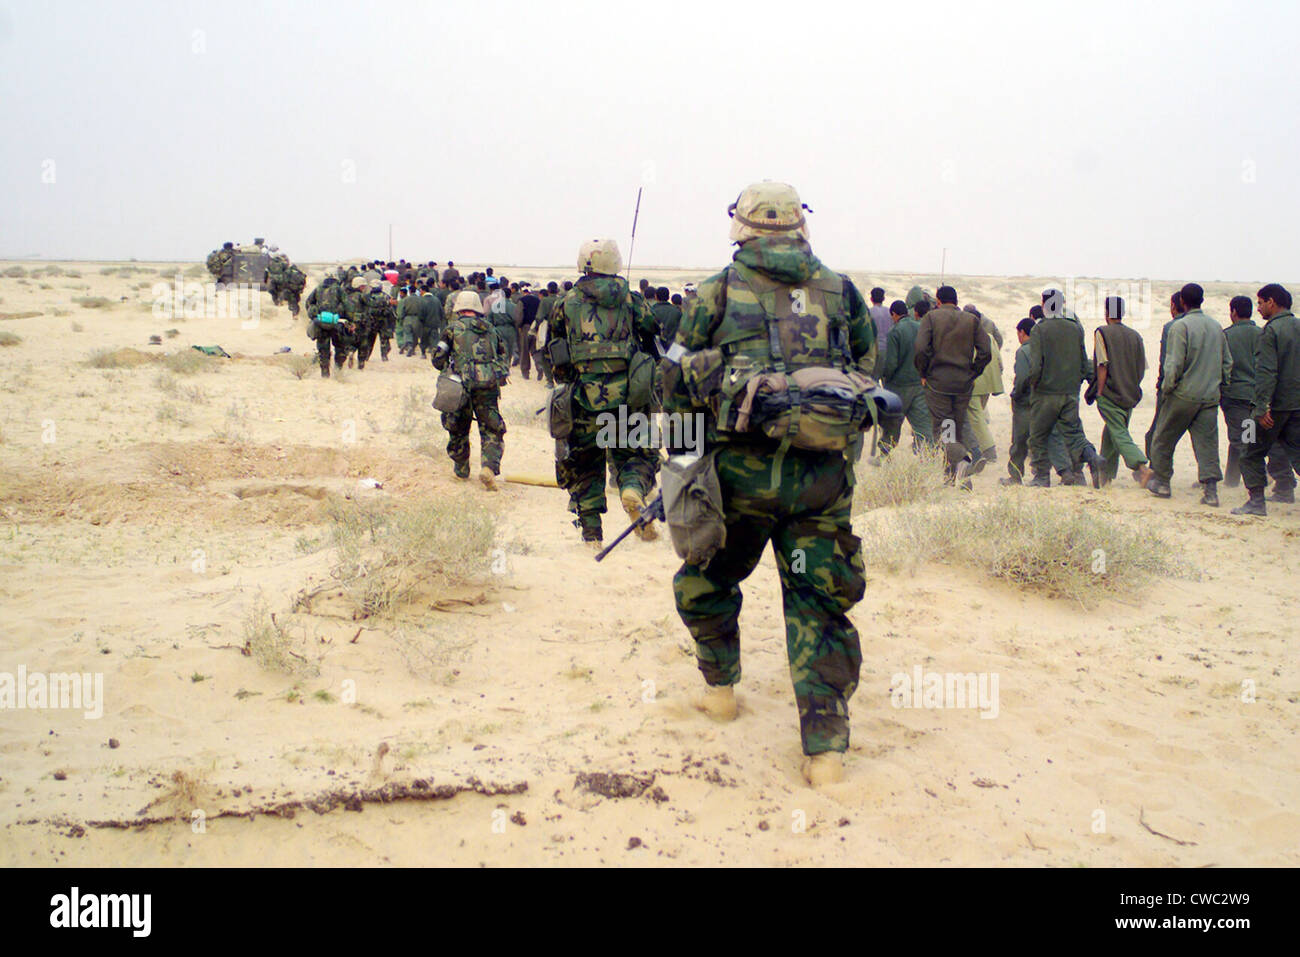 U.S. Marines escort captured enemy prisoners of war to a holding area in the desert of Iraq on March 21 2003 during - Stock Image